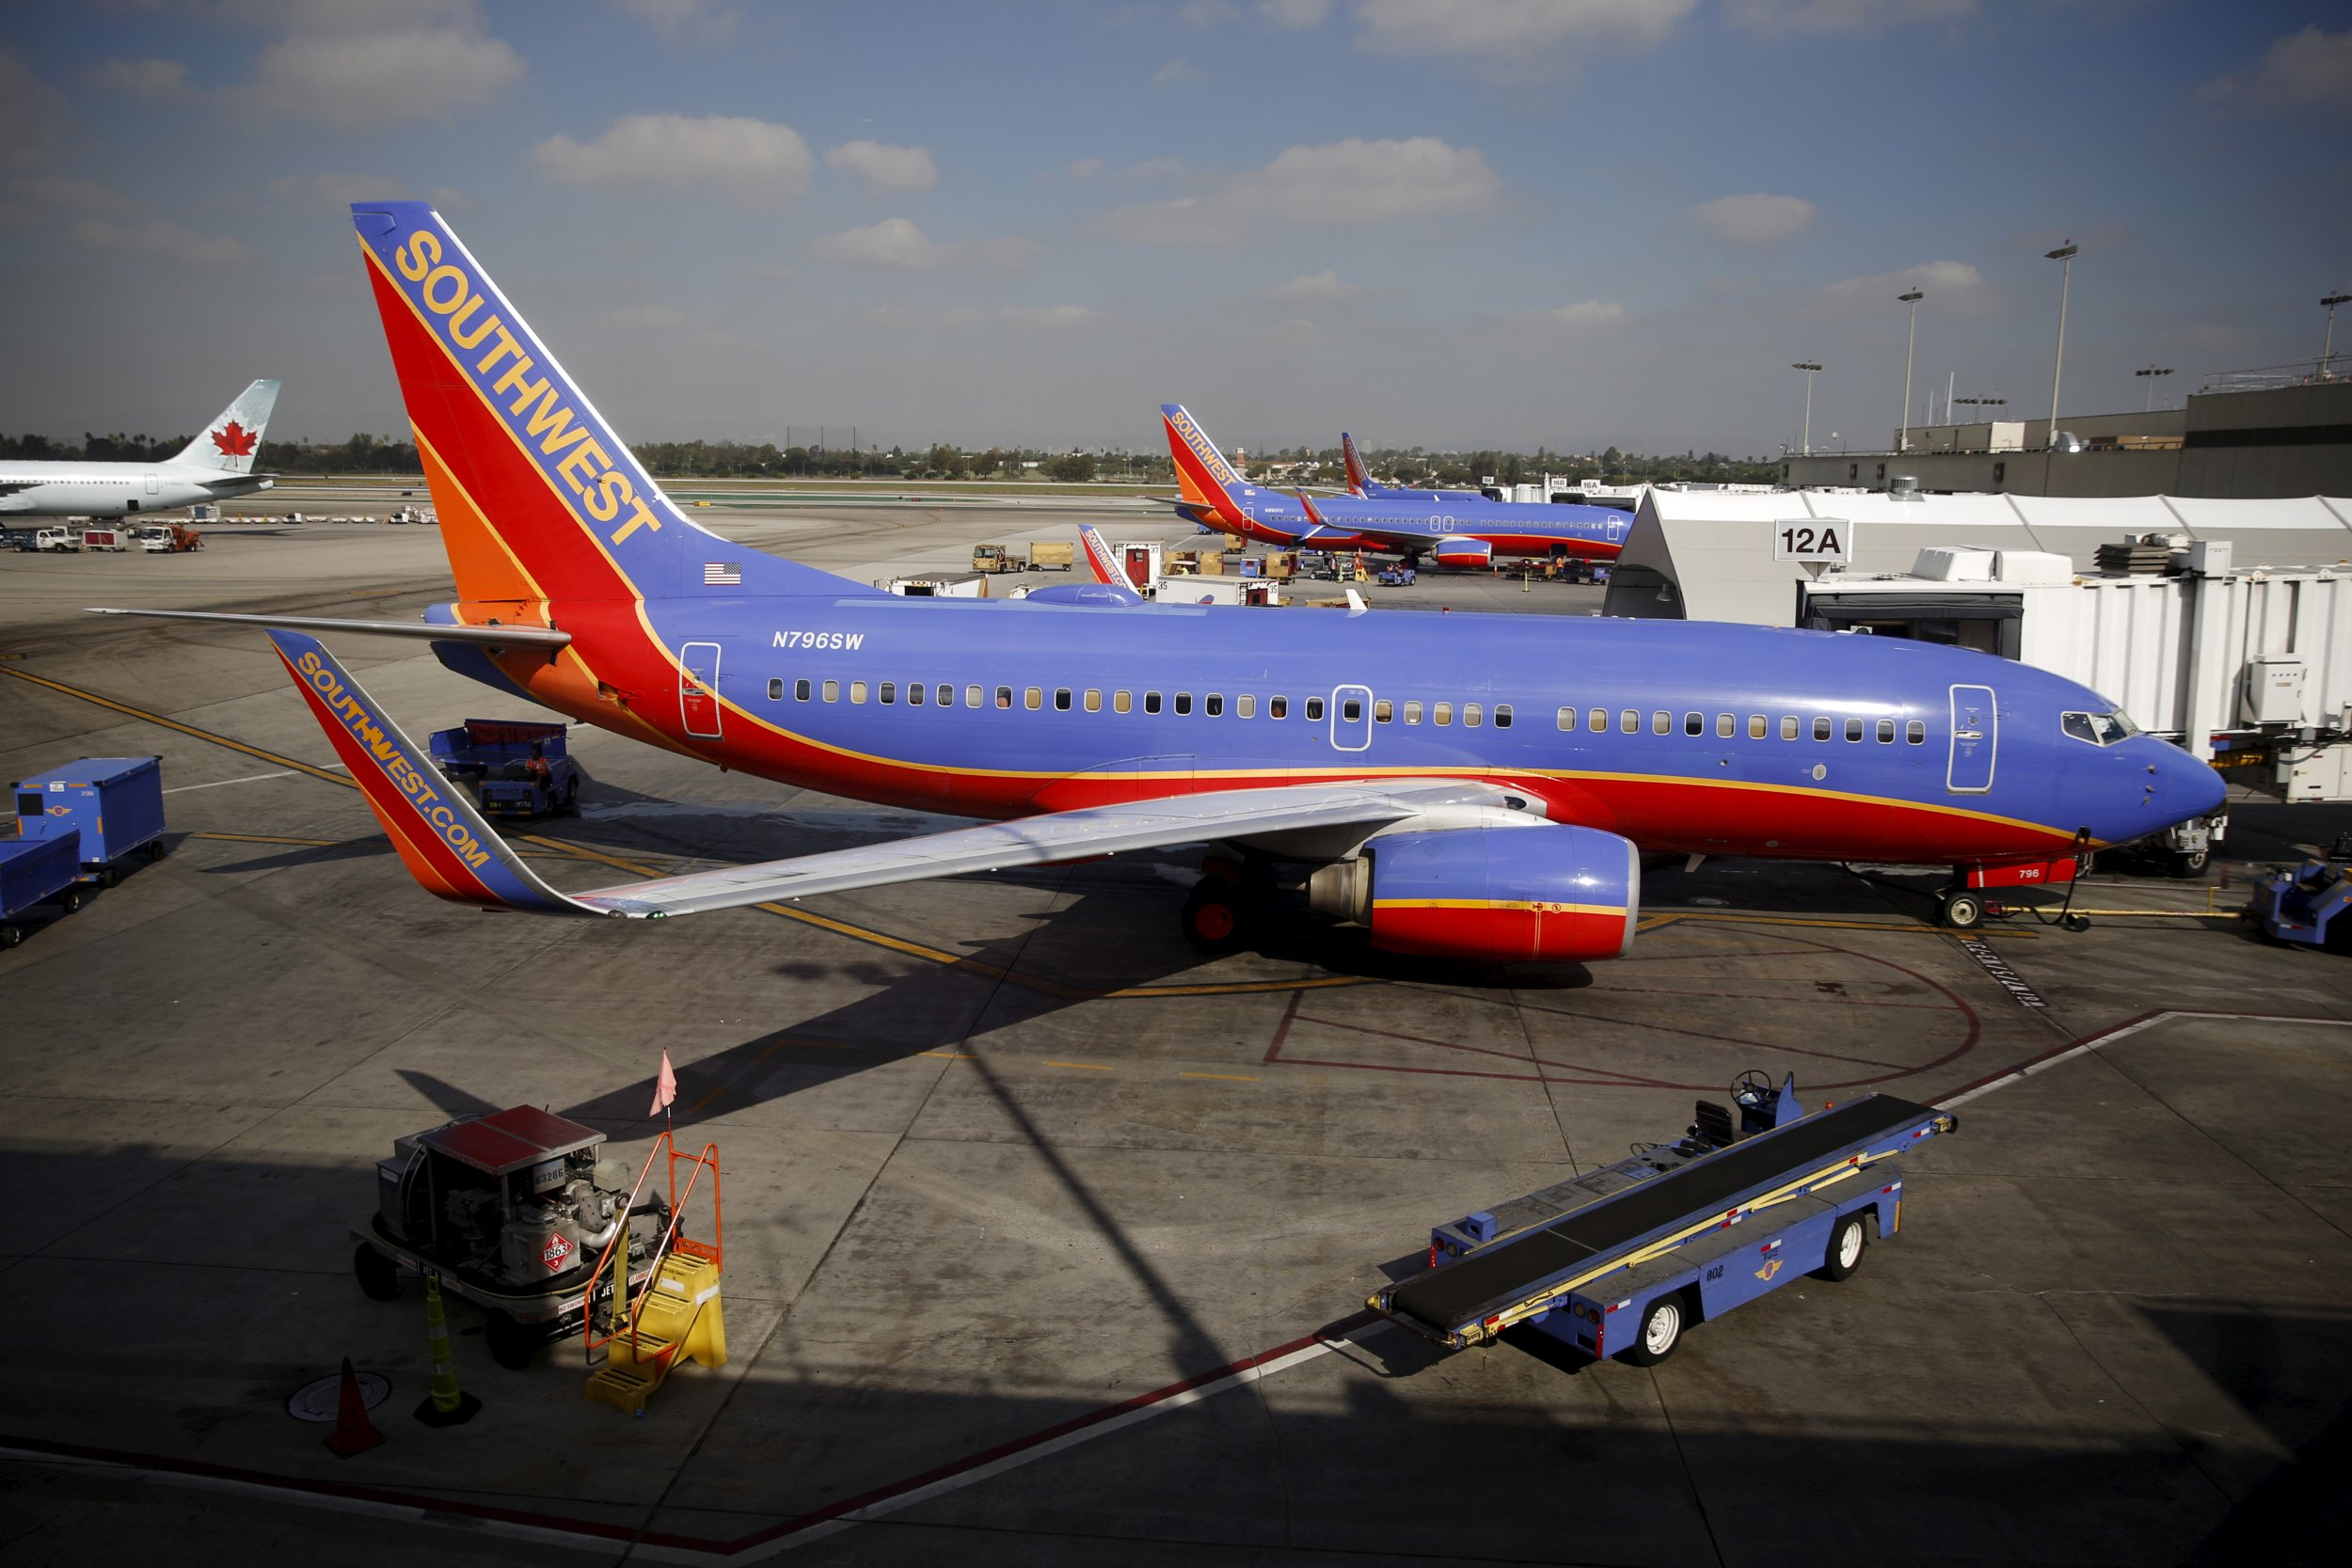 Muslim Student Kicked Off Southwest Airlines Flight for ...